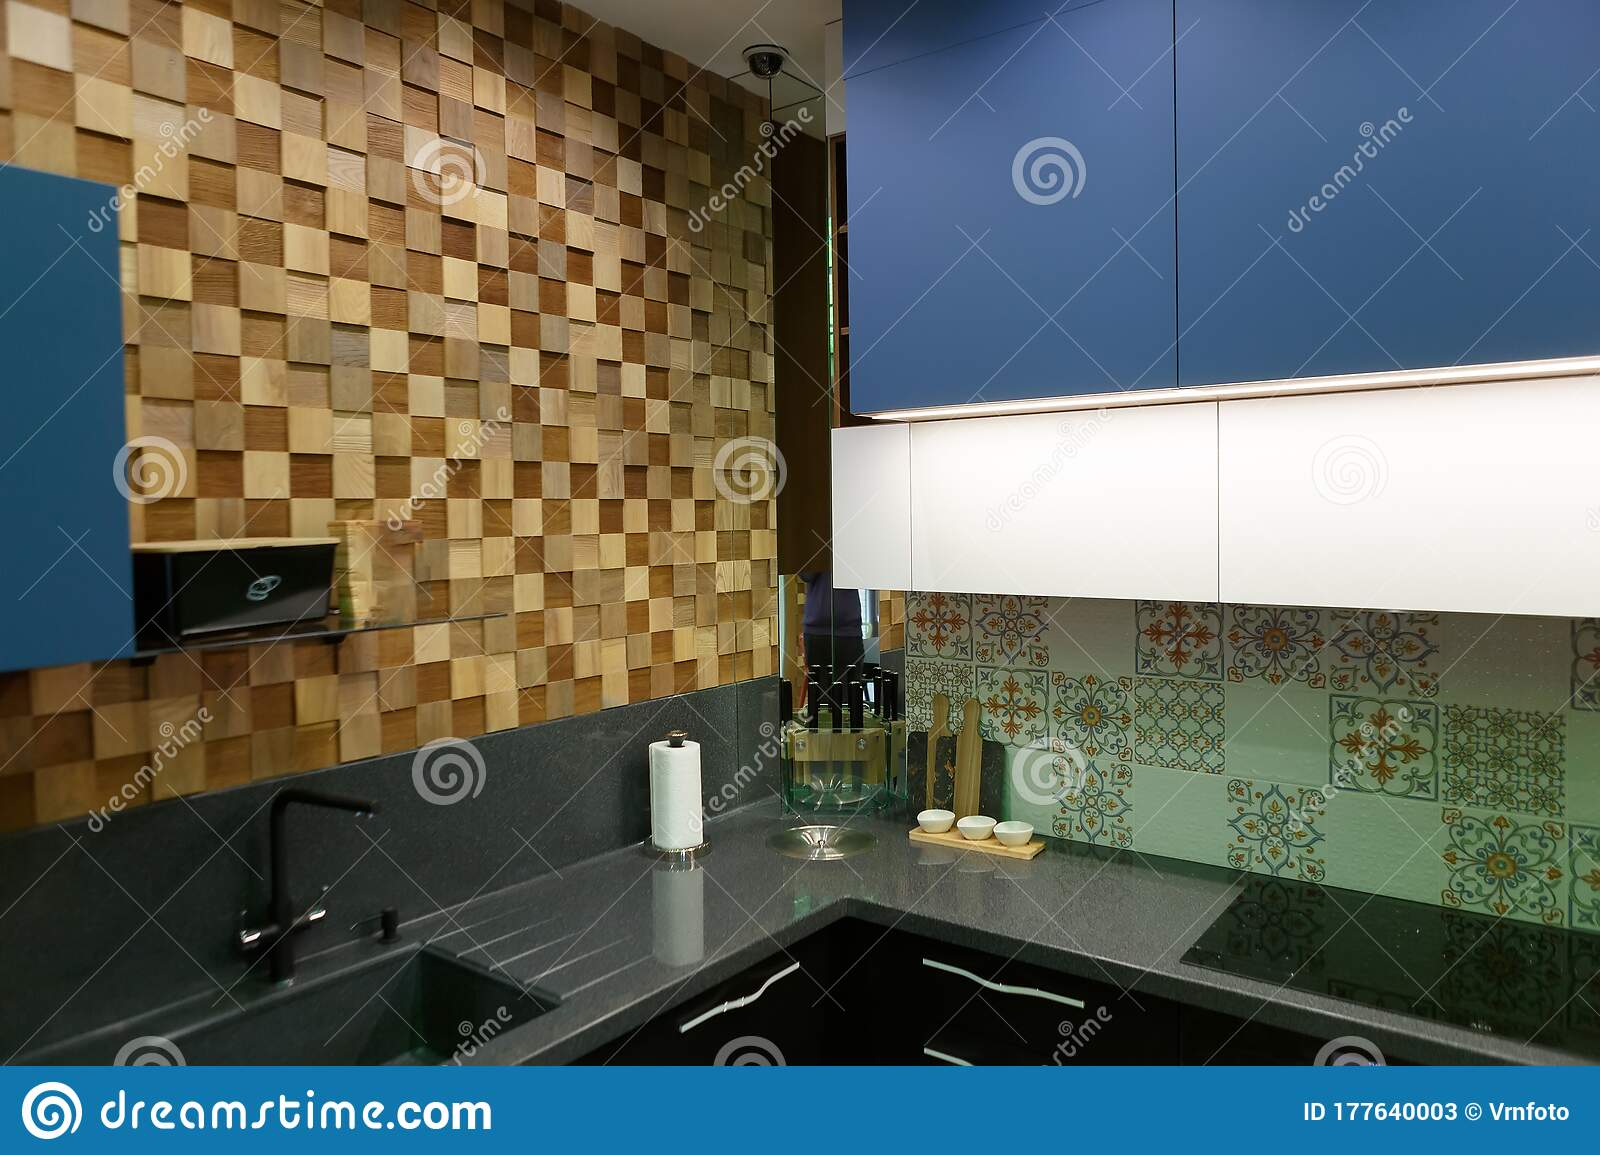 Modern Kitchen In Black And Blue Corner With A Wooden Wall Stock Image Image Of House Builtin 177640003